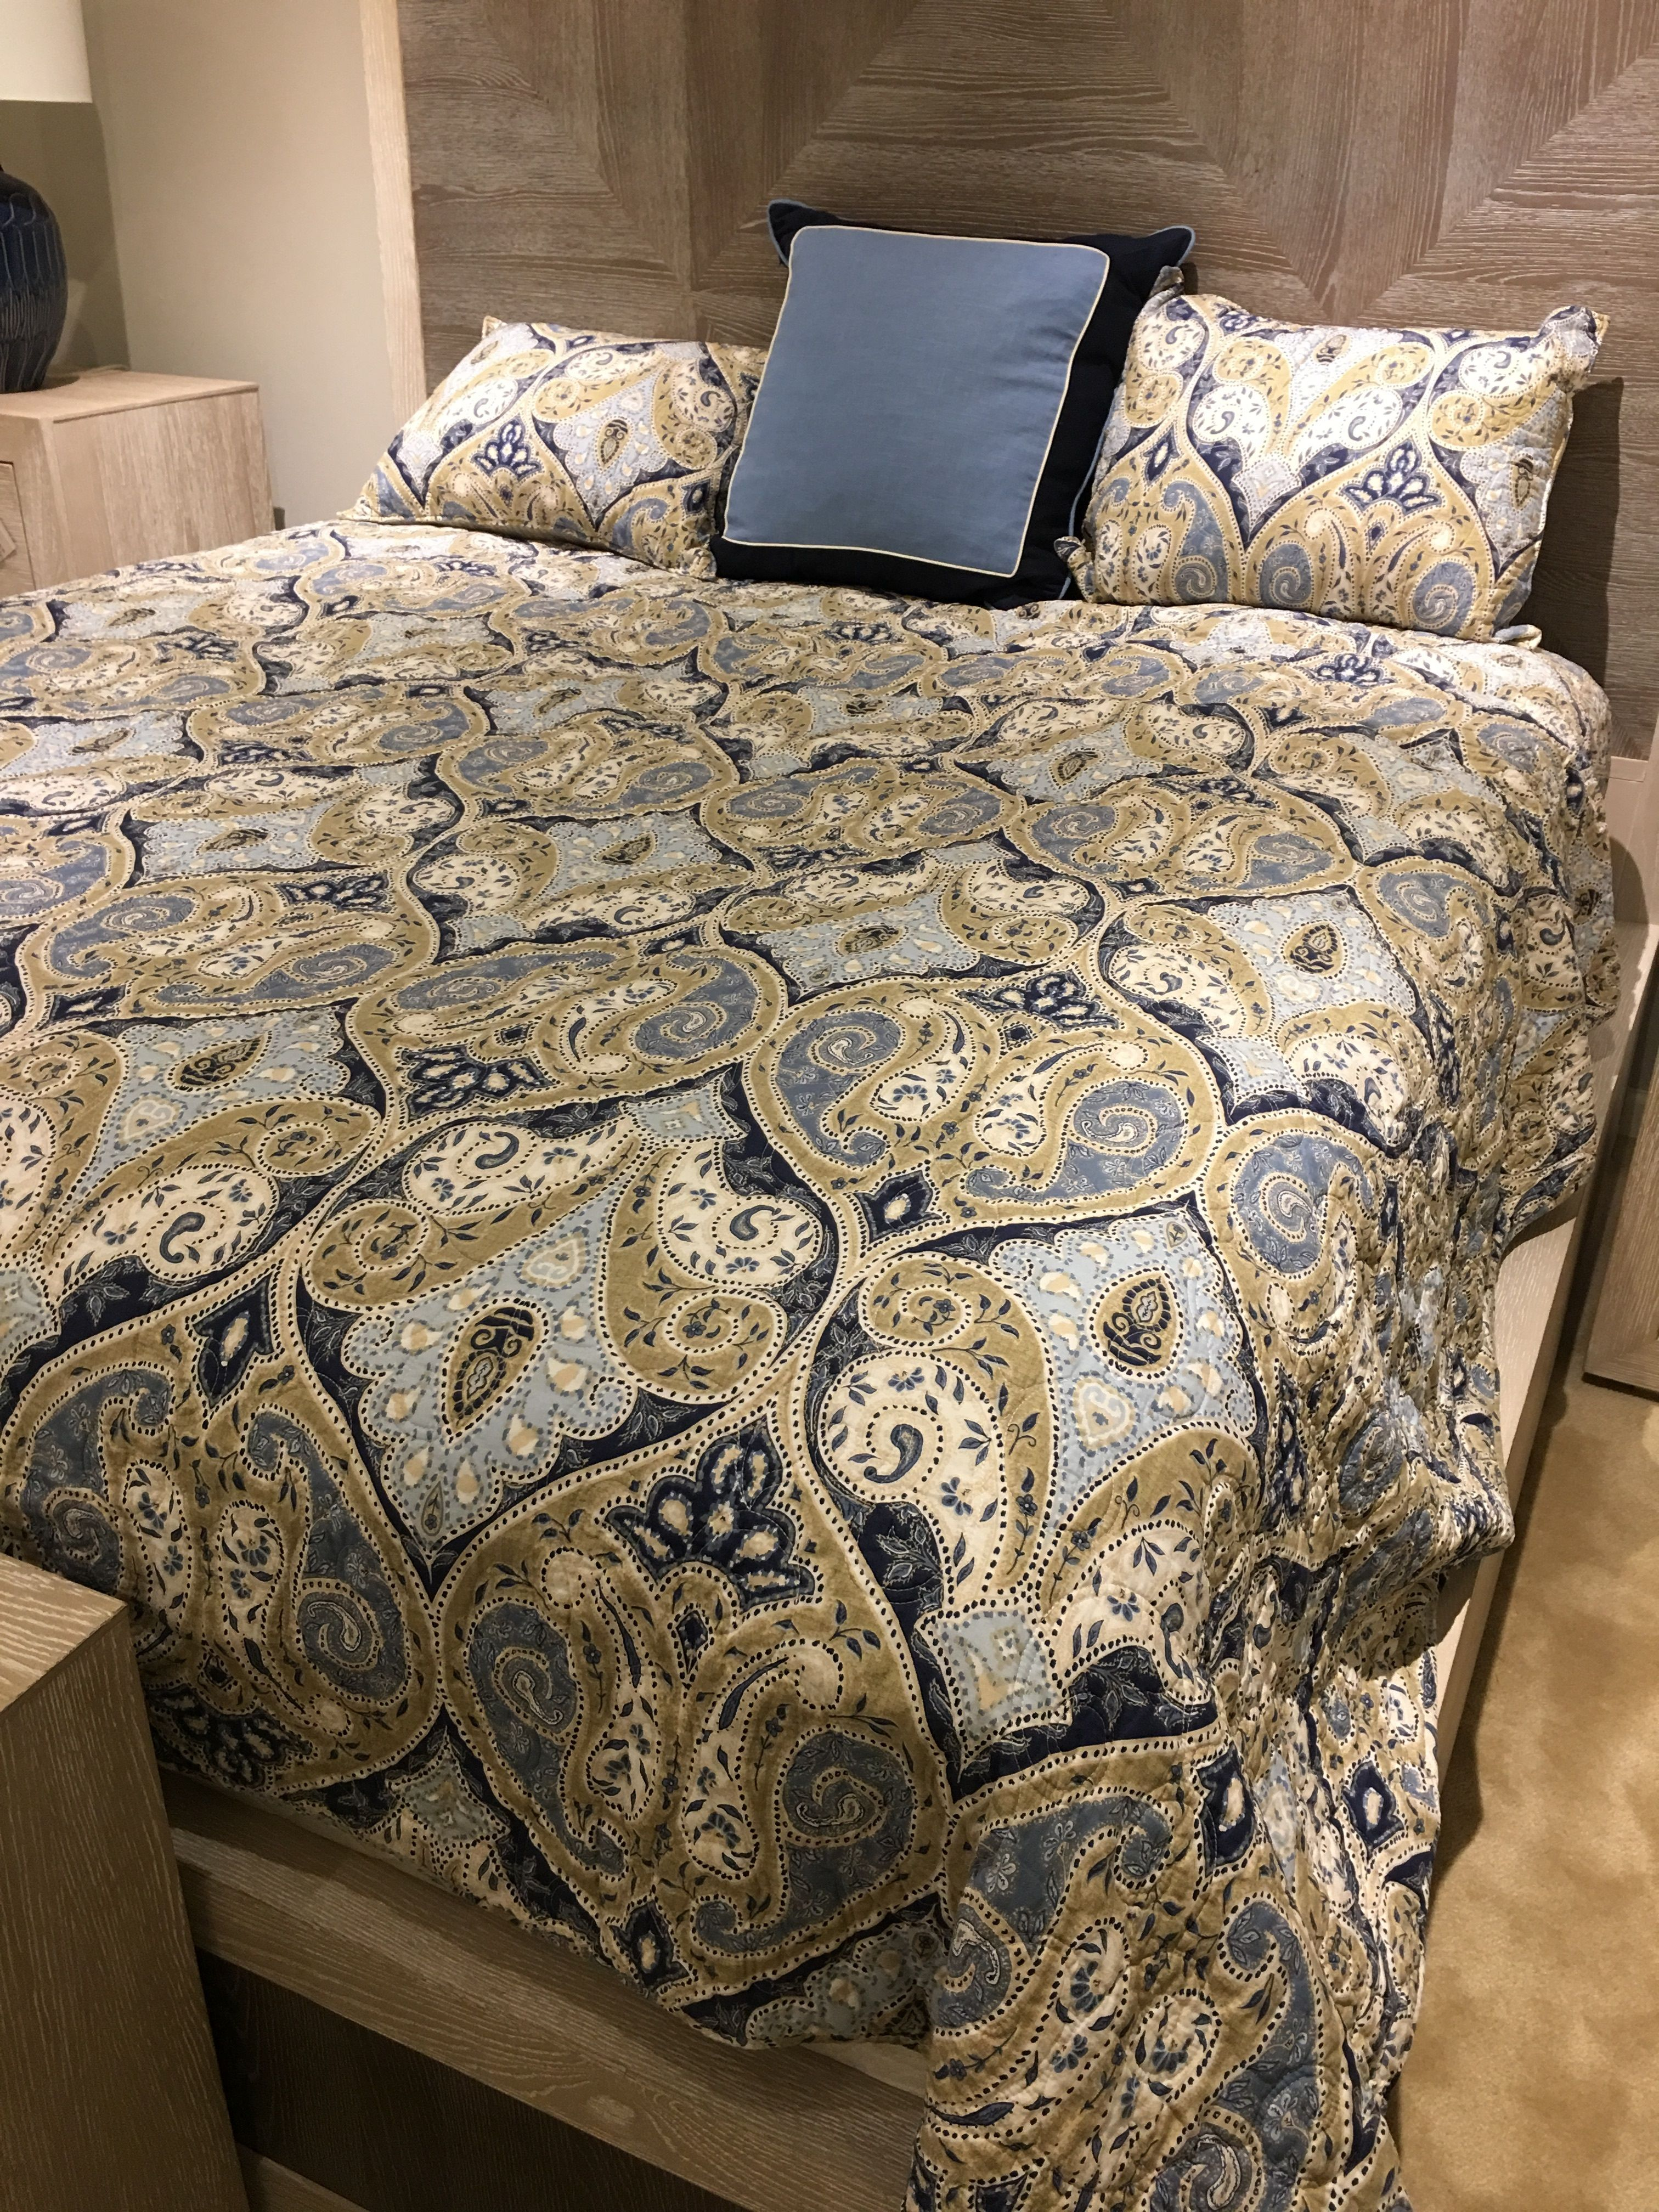 Bedding At Custom Home Furniture Galleries With Images Bed